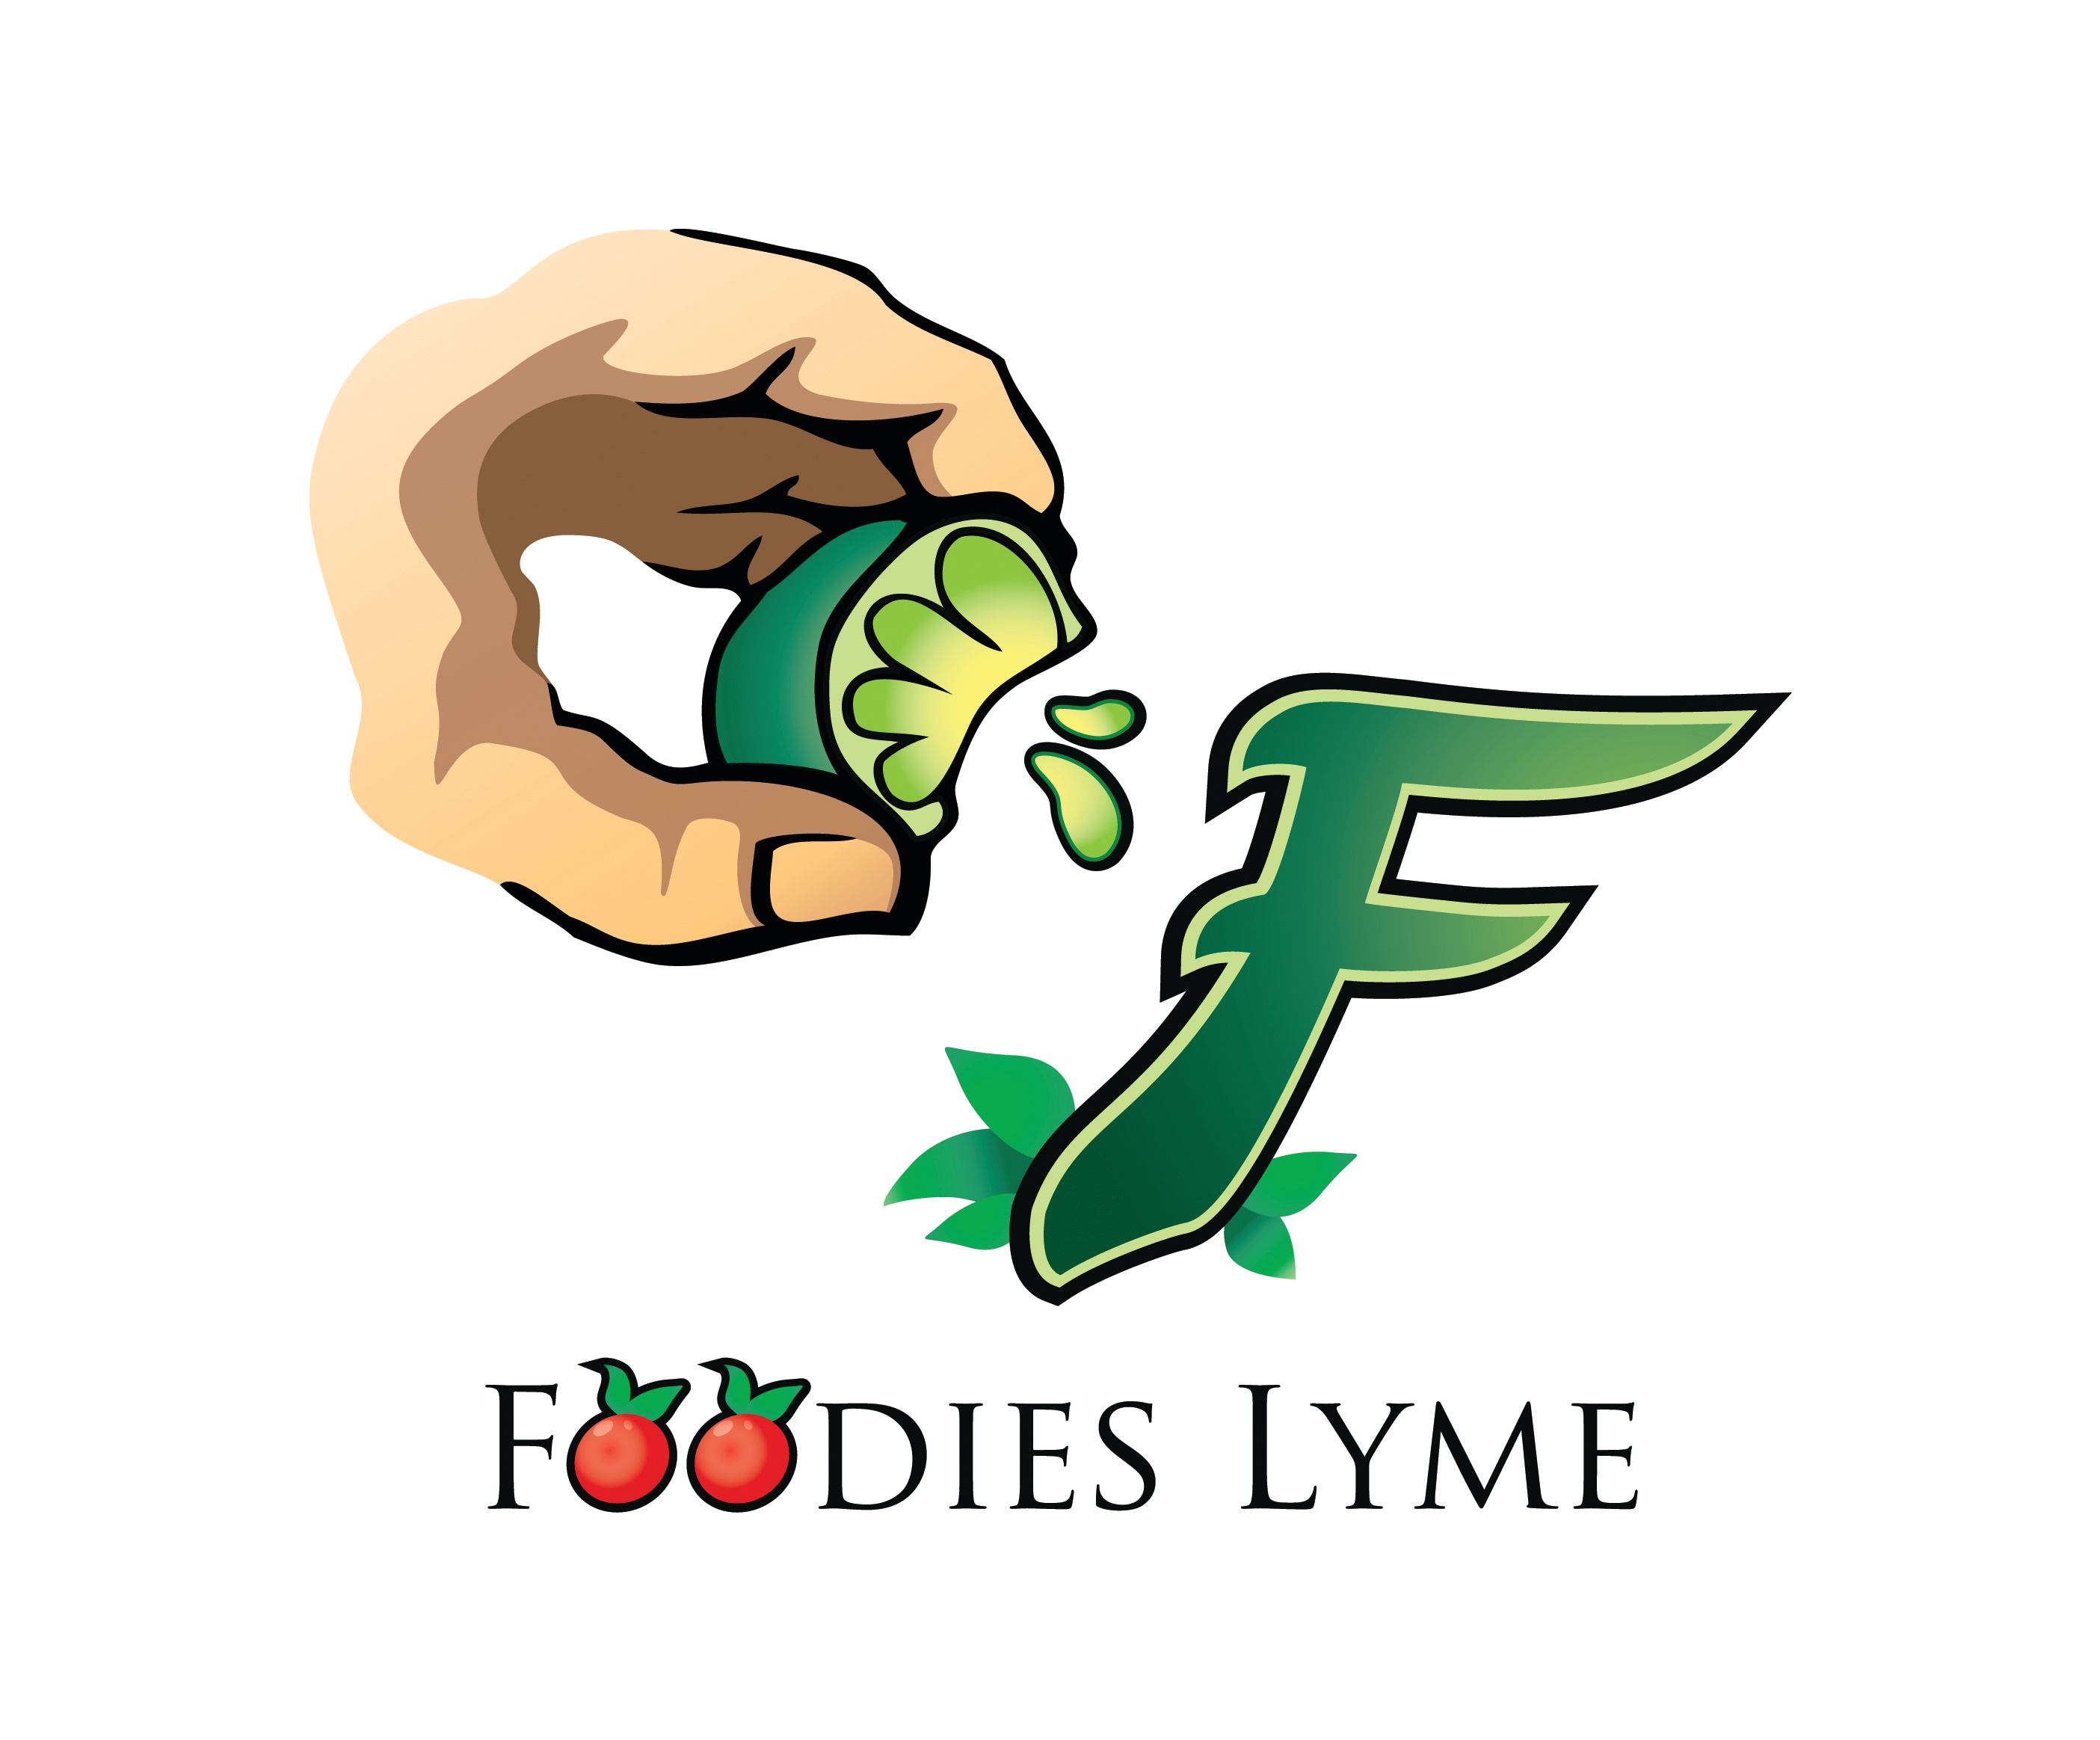 Foodies Lyme Logo